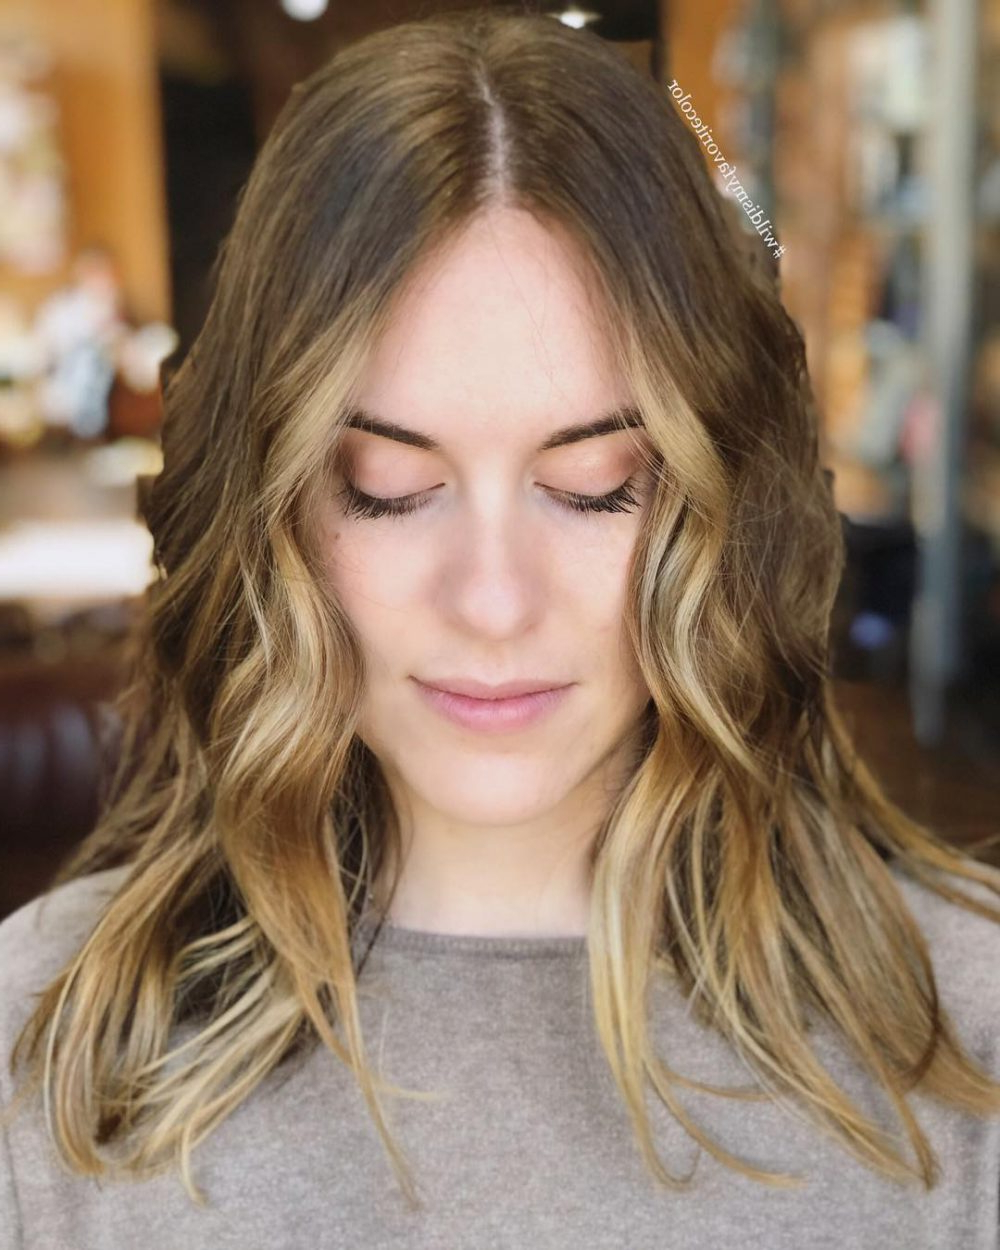 17 Flattering Medium Hairstyles For Round Faces In 2019 In Famous Medium Haircuts Ideas For Round Faces (View 15 of 20)